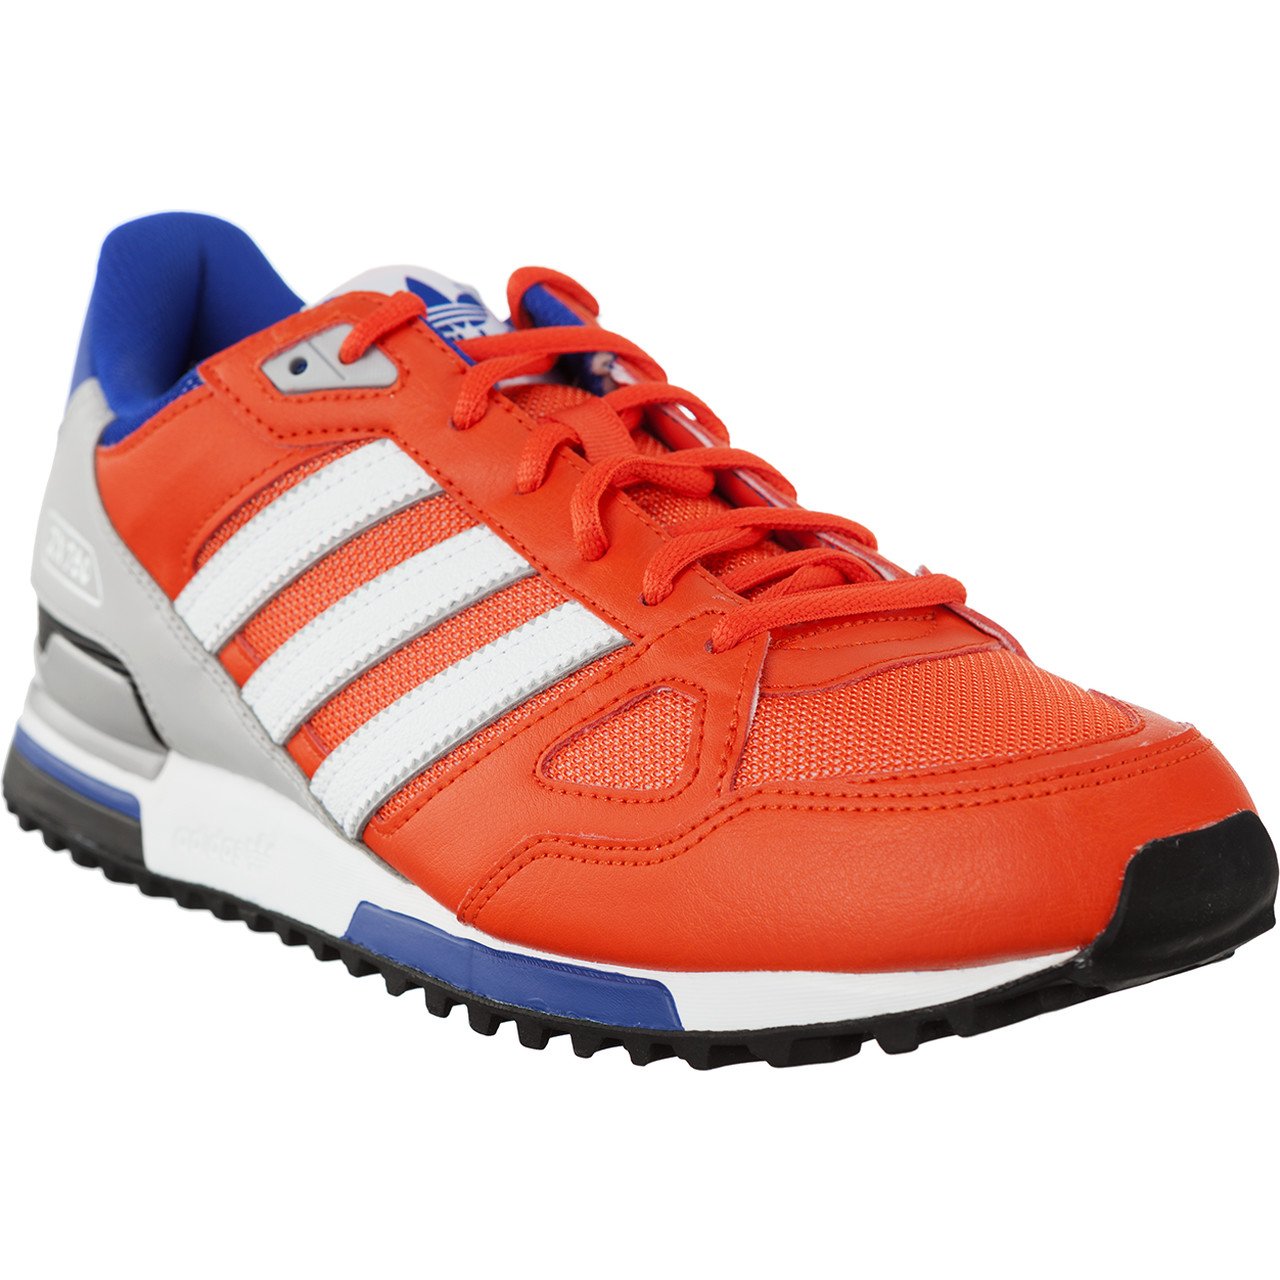 buy cheap online adidas zx 750 orange fine shoes. Black Bedroom Furniture Sets. Home Design Ideas